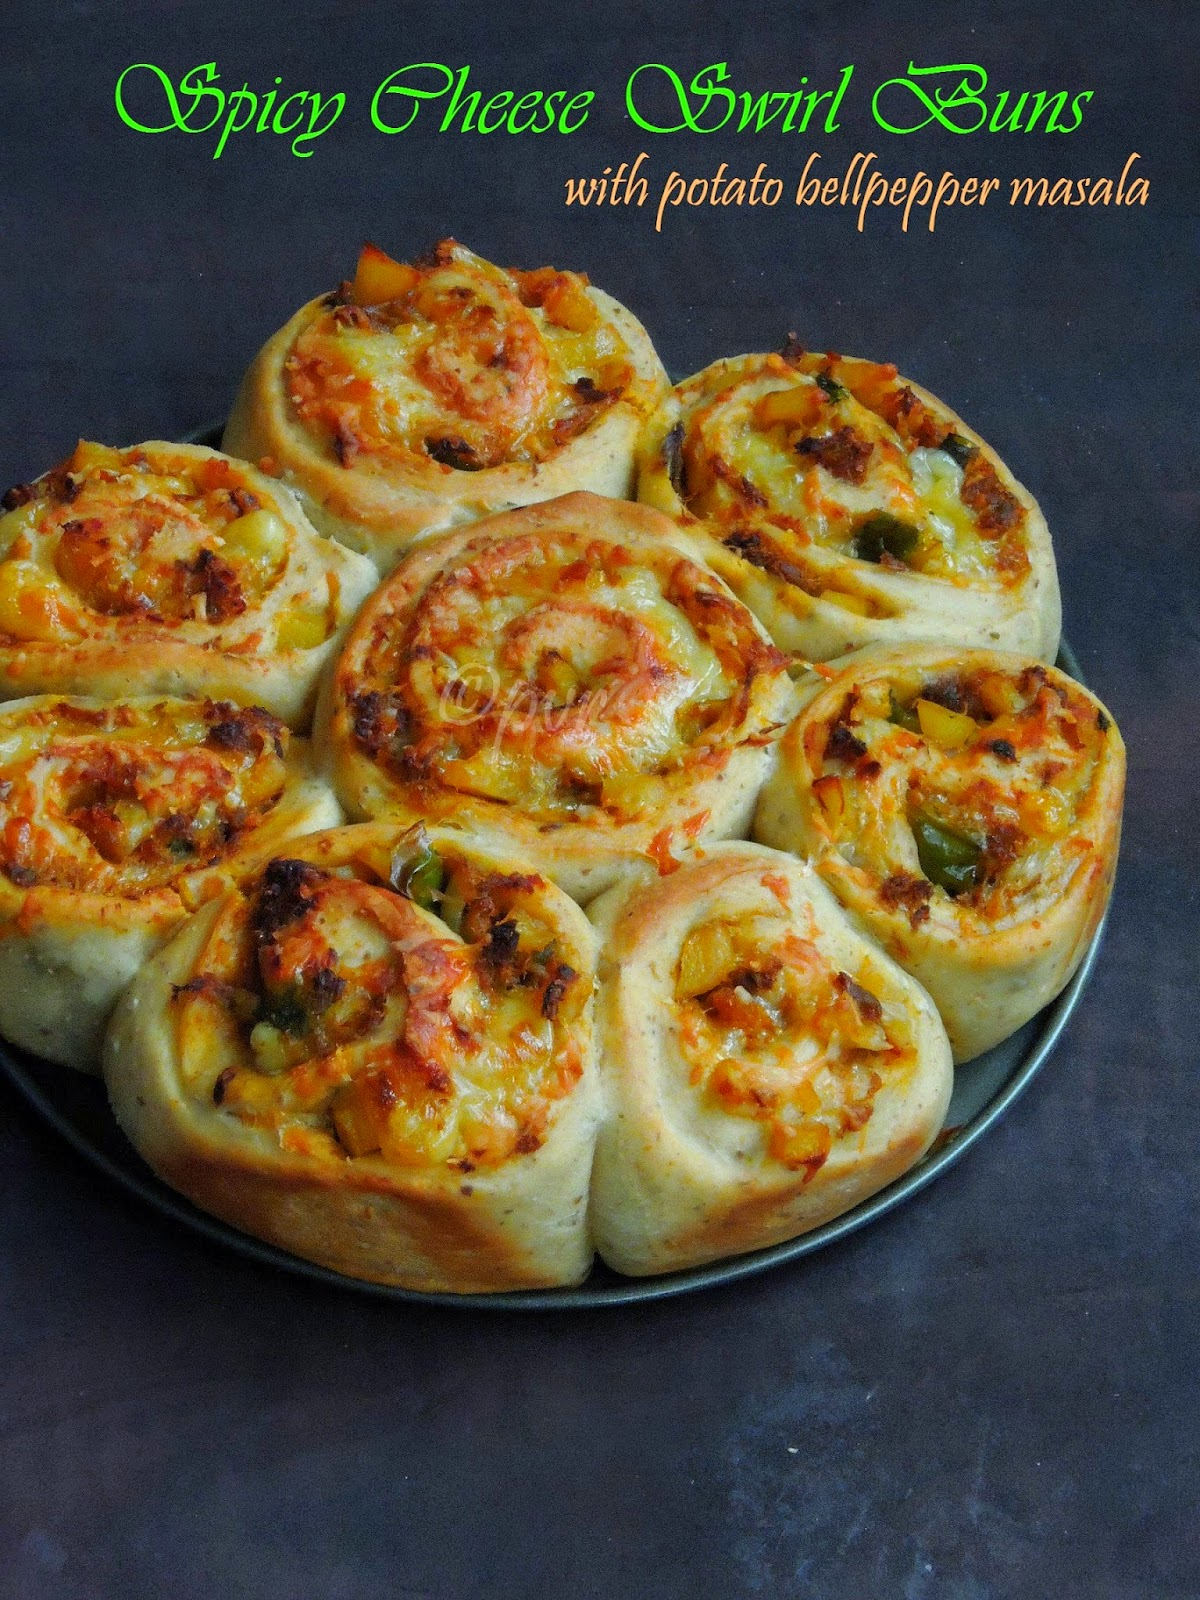 Stuffed Cheese & Vegetable Swirl buns